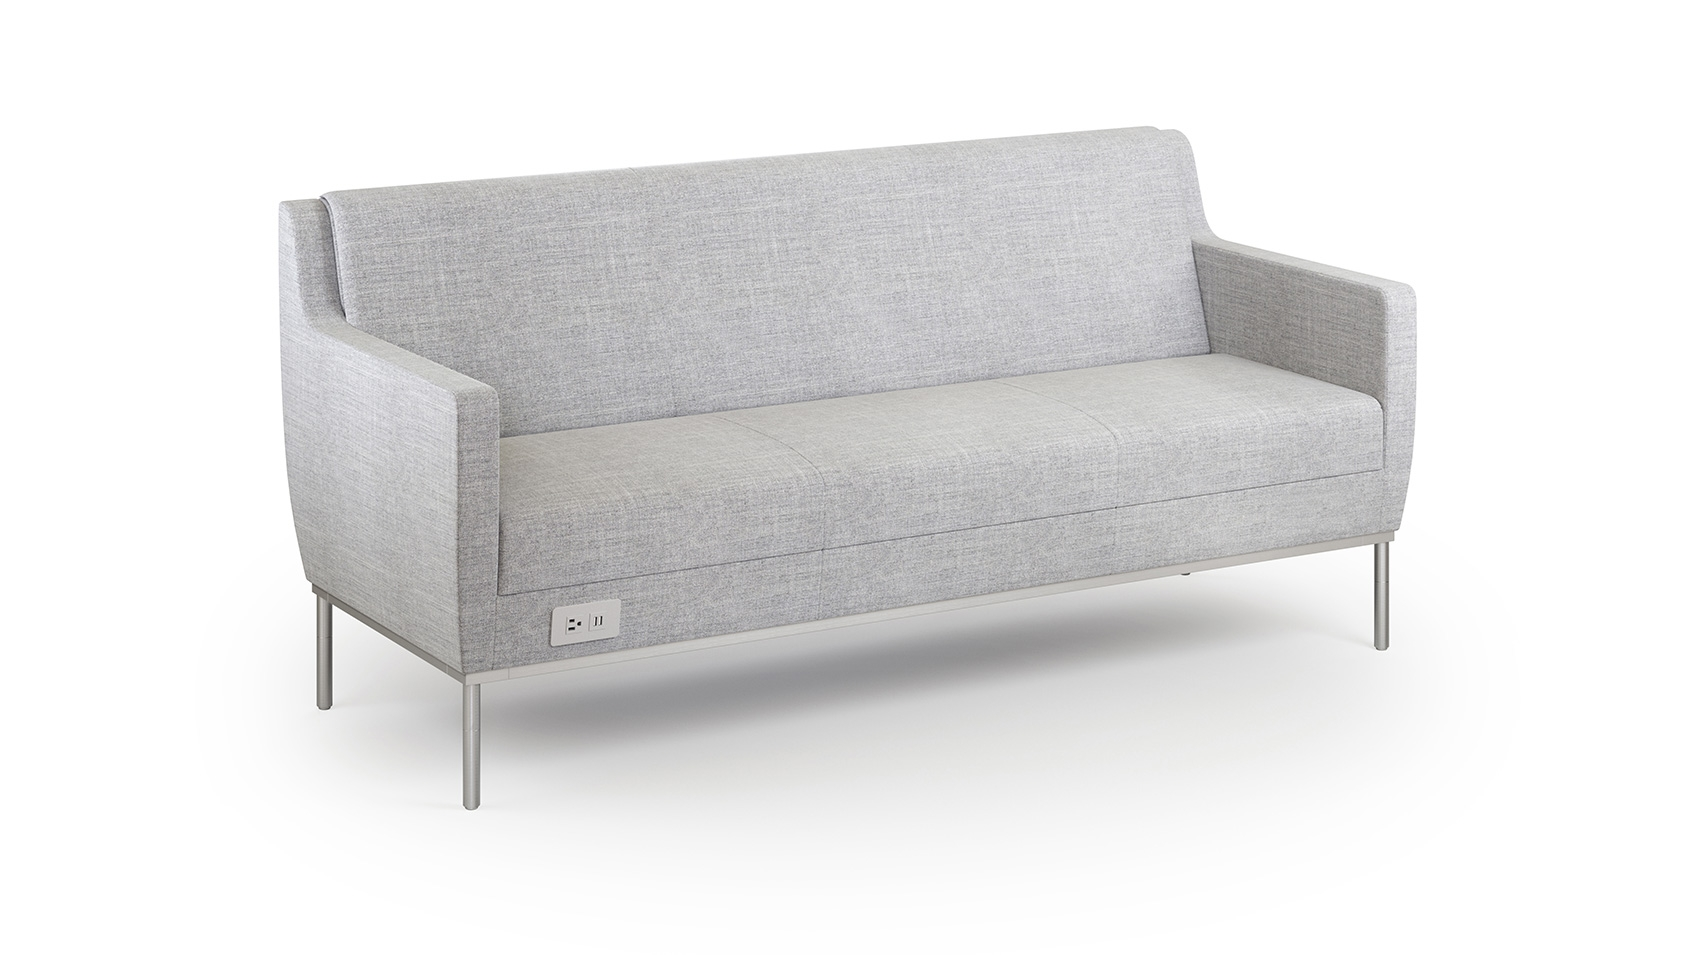 The Dess Collection Includes Low Arm And High Arm Versions Of A Chair,  Loveseat And Sofa With A Unique Rollover Back Cushion Detail And Sleek  Metal ...